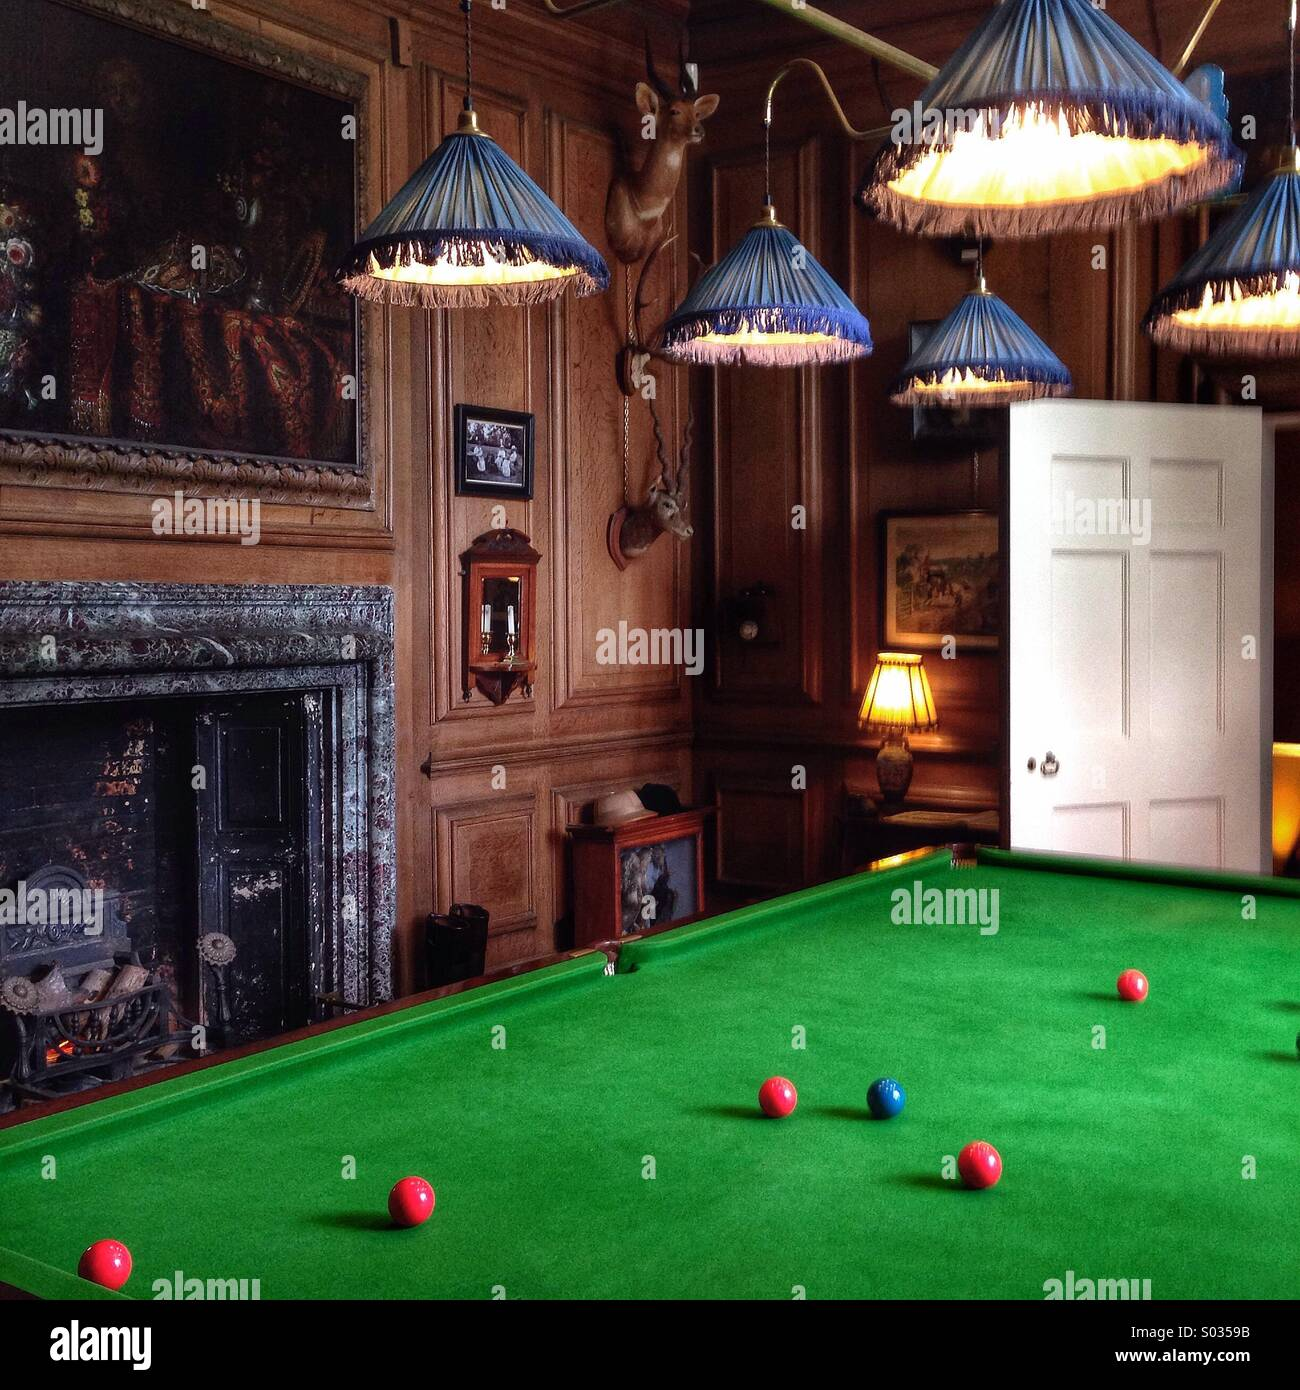 Snooker Table In A Billiard Room By A Grand Fire Case And Painting - Pool table painting